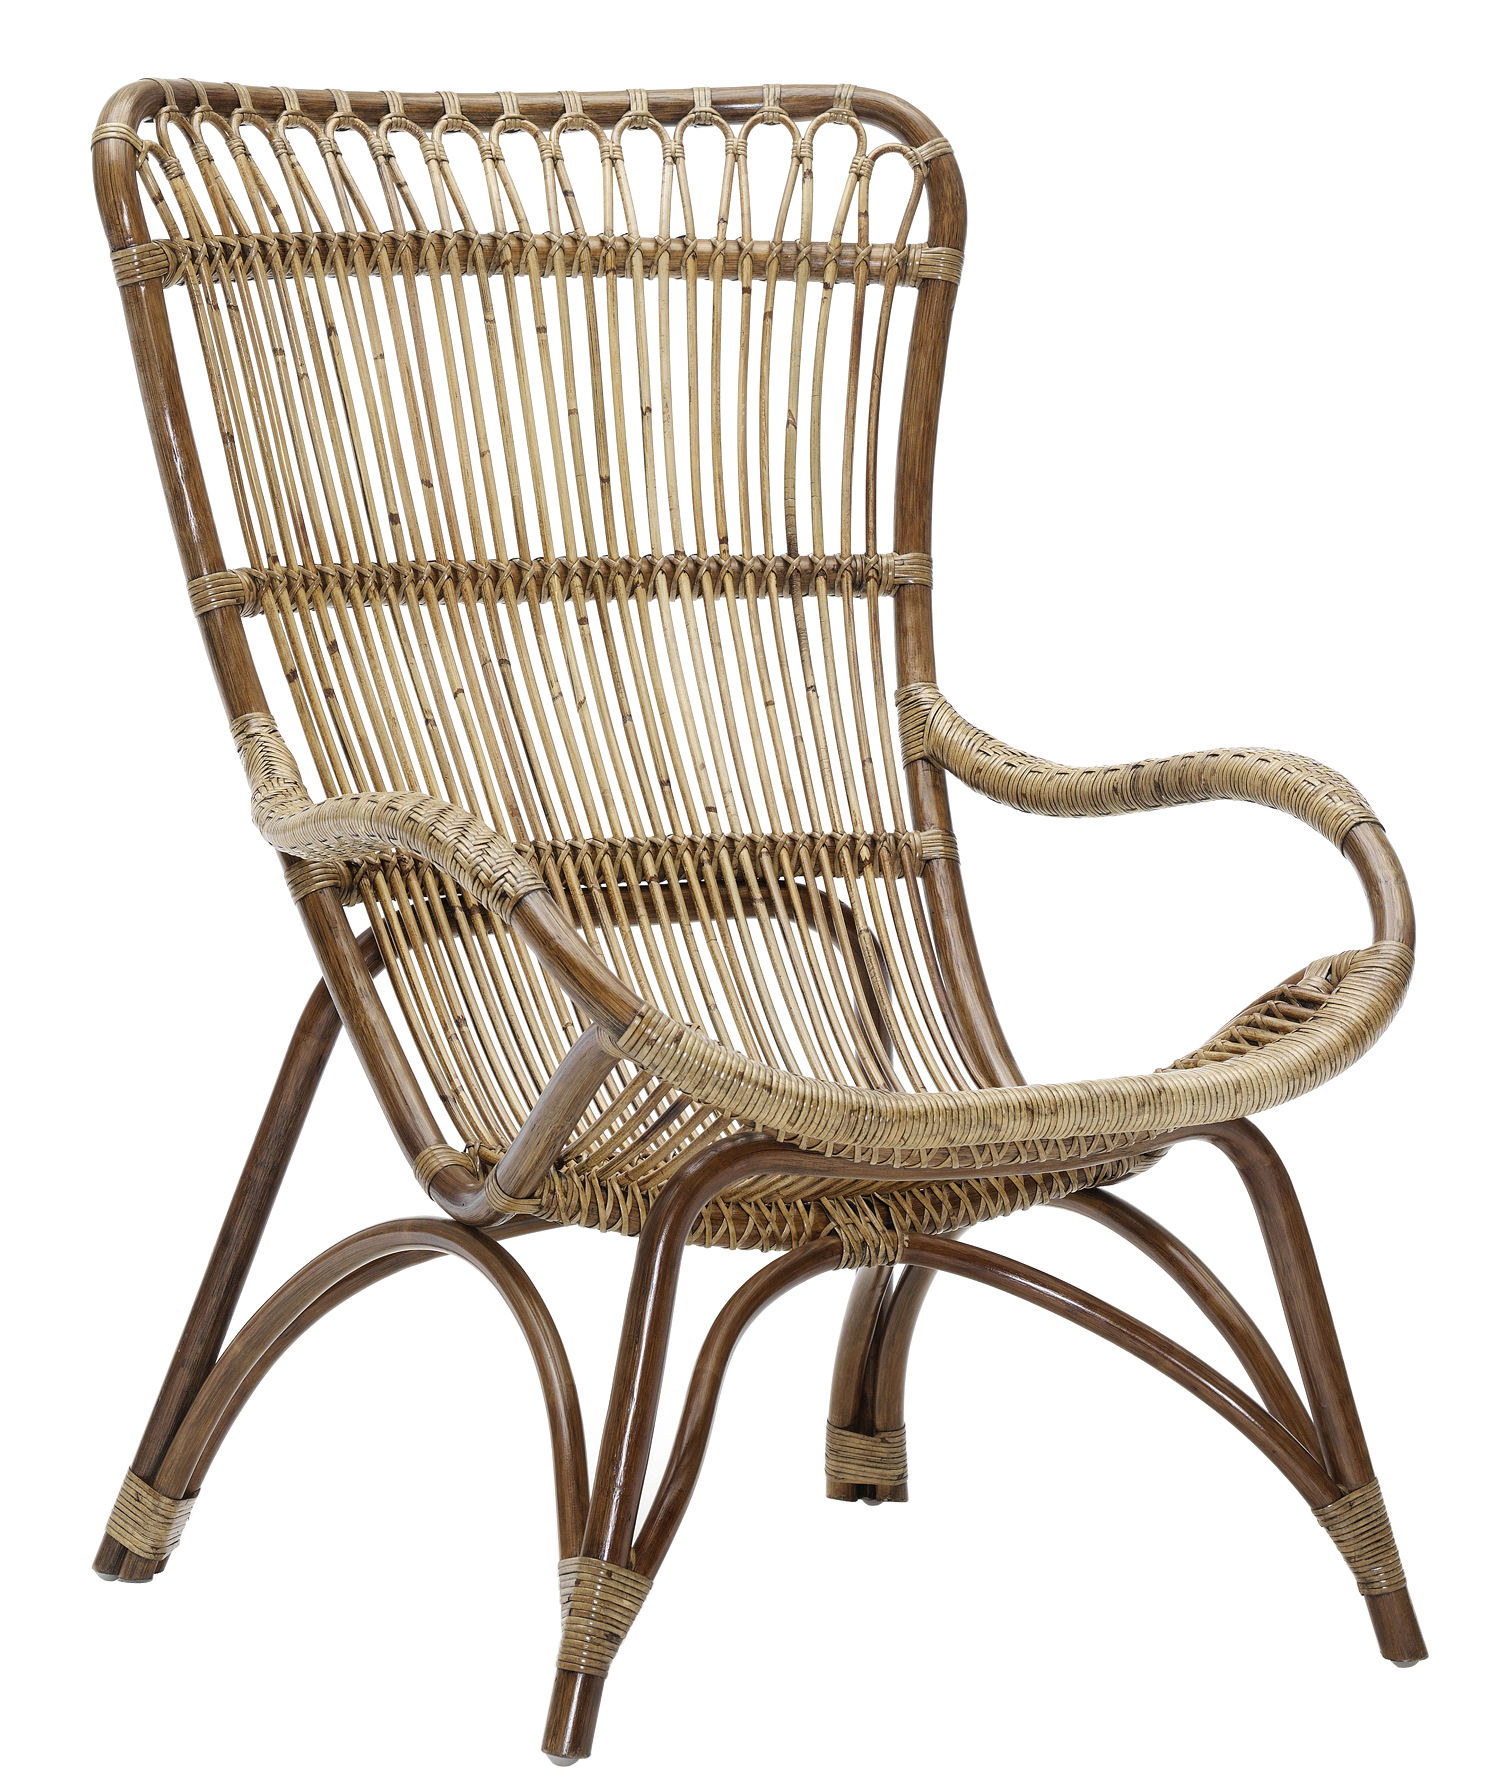 Product selections - Modern nature - Monet Armchair by Sika Design - Antique - Rattan